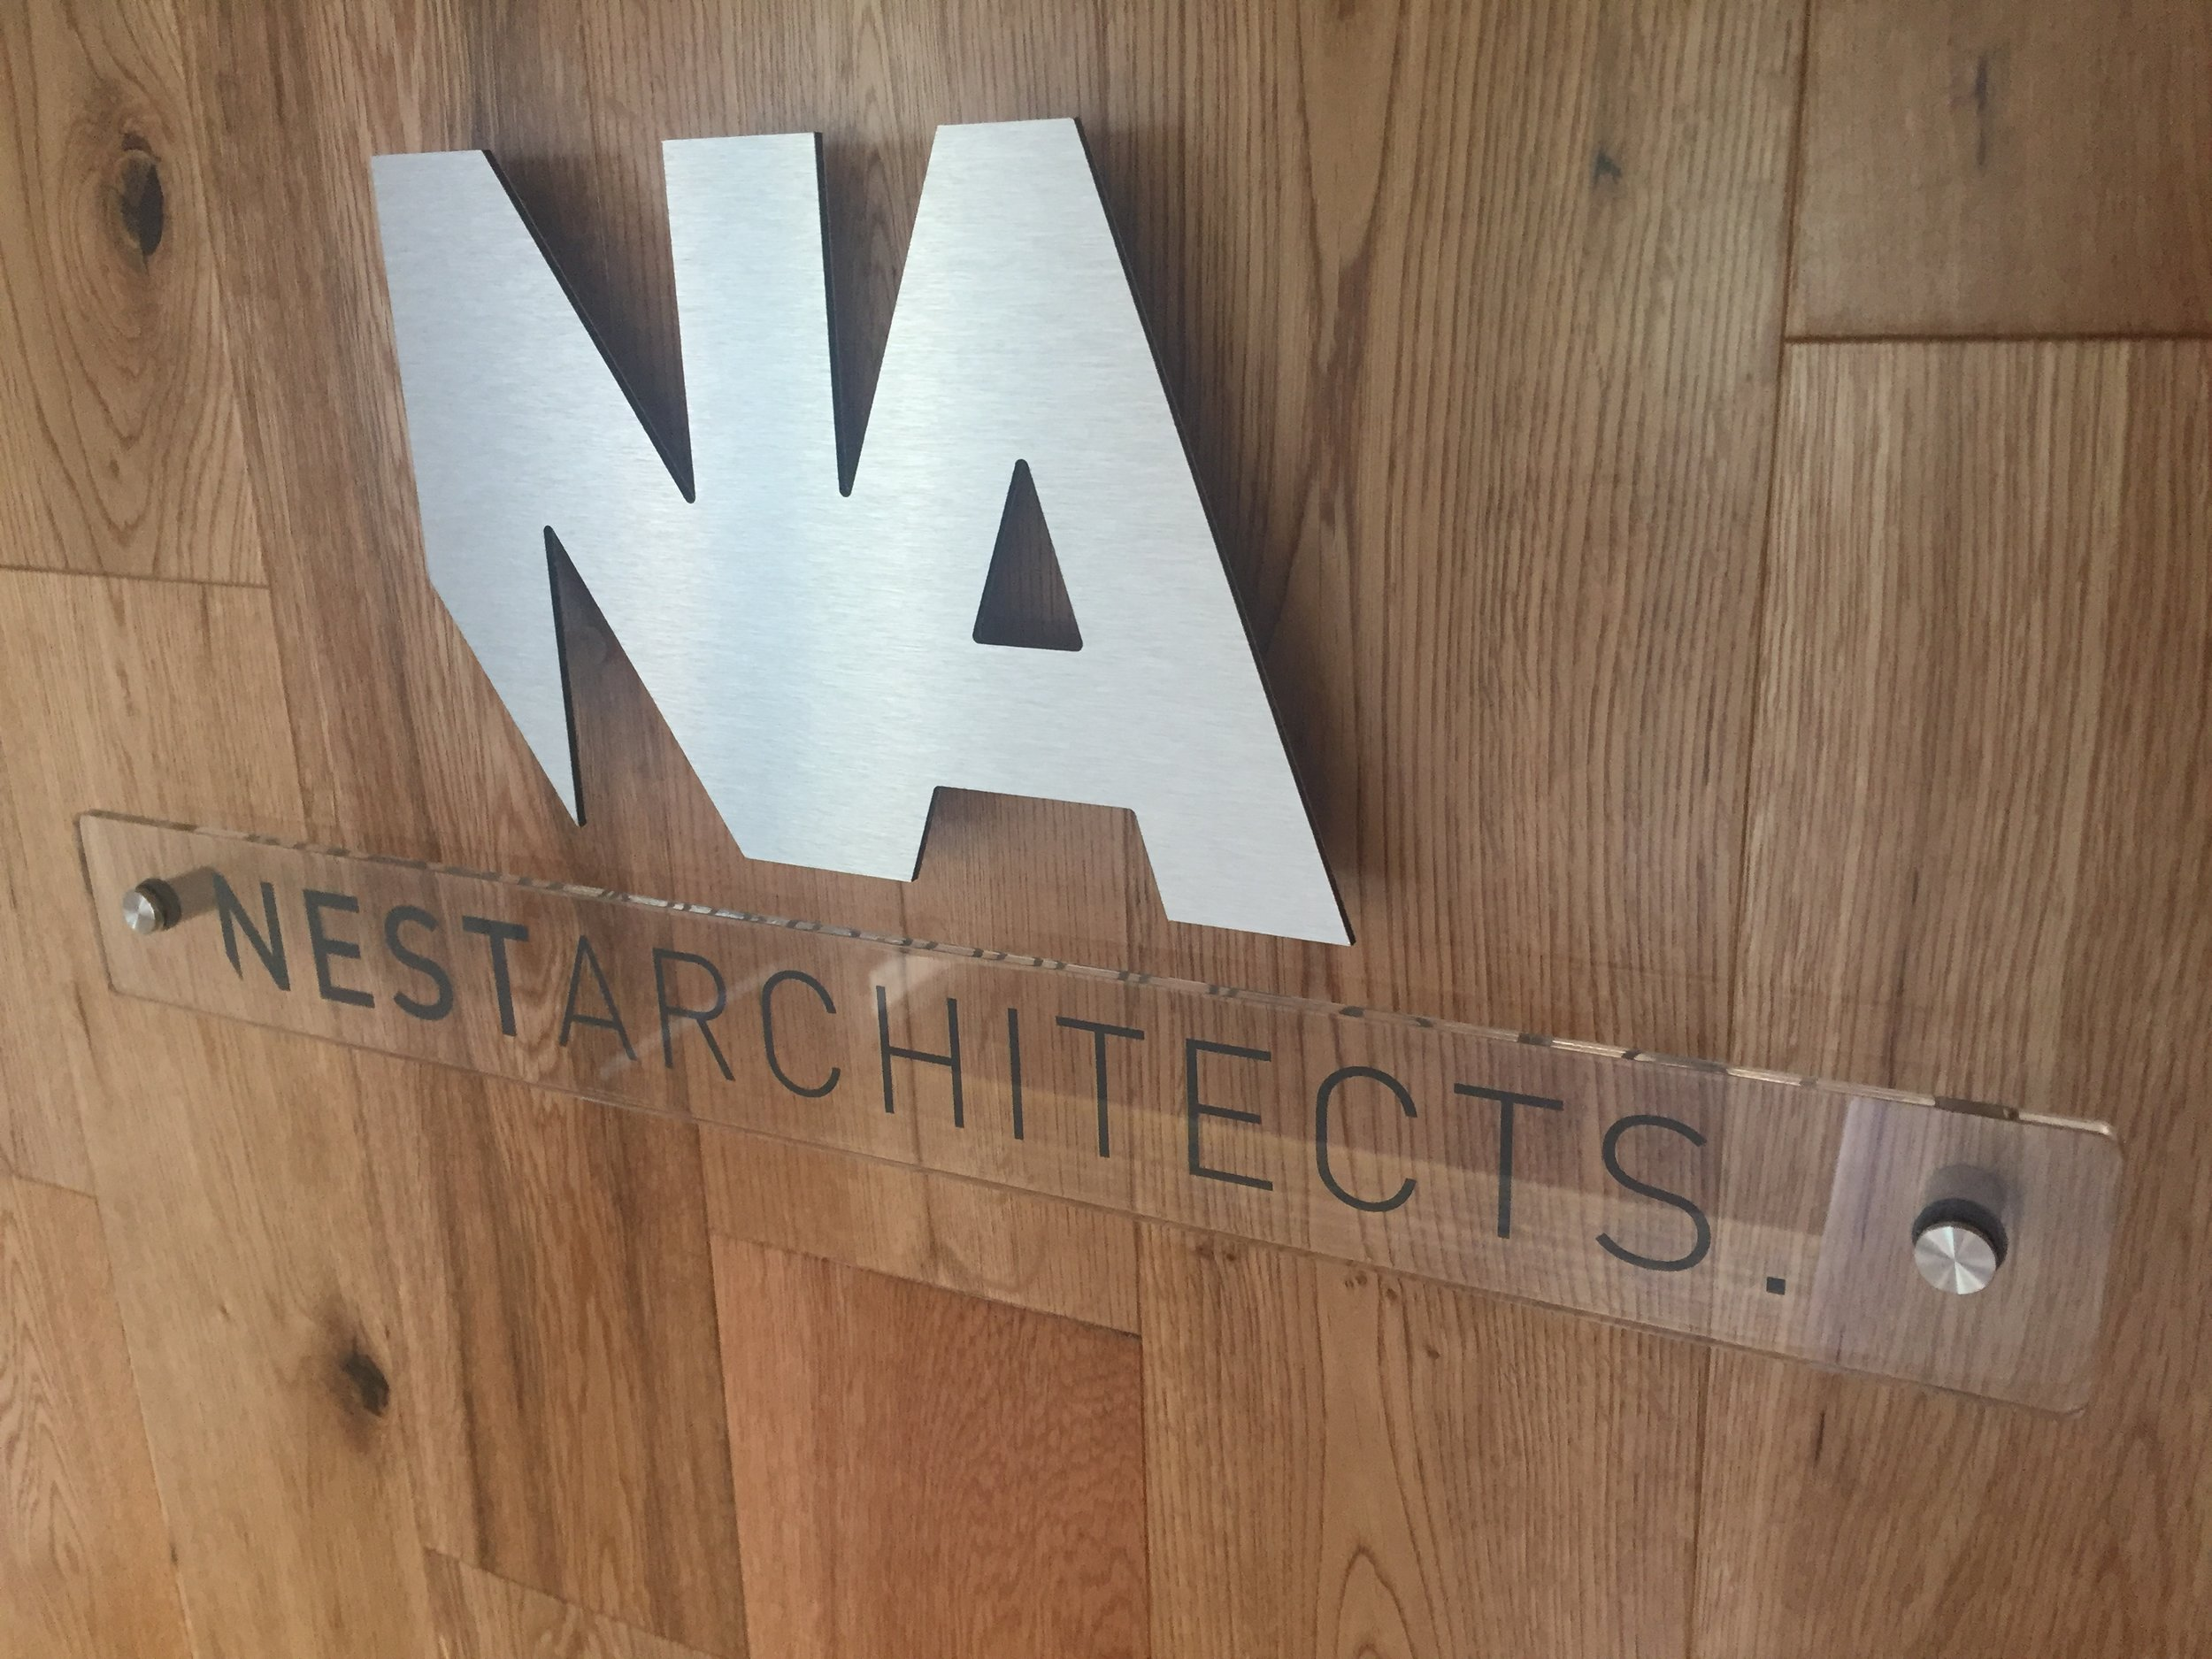 Nest Architects Launch Website - New website and new look for Nest Architects.Read More…